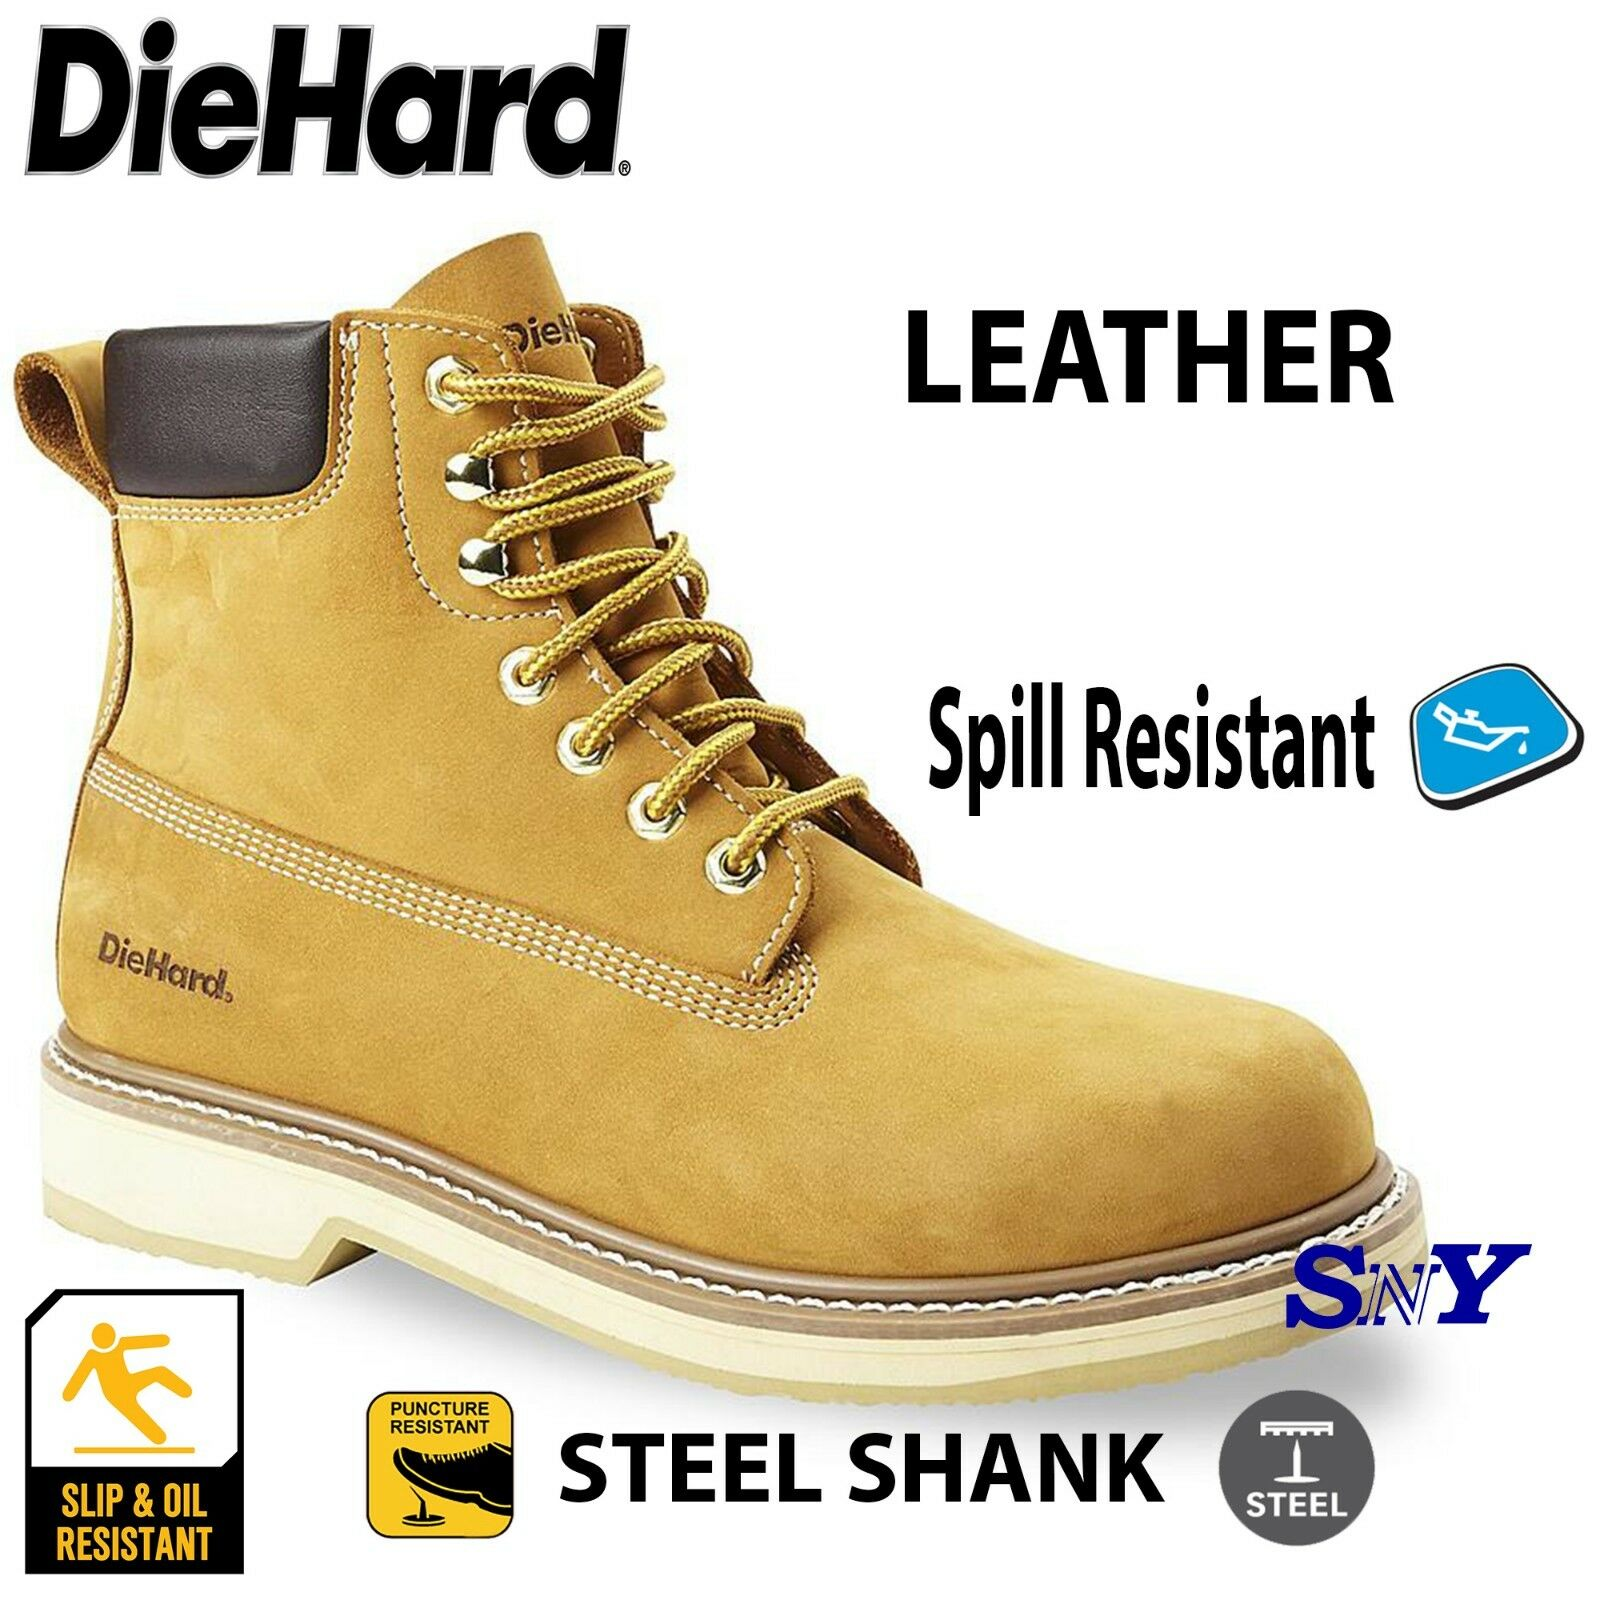 DieHard Soft Toe Mens  6  Work Safety Boots Water & Oil  Slip Resistant DH